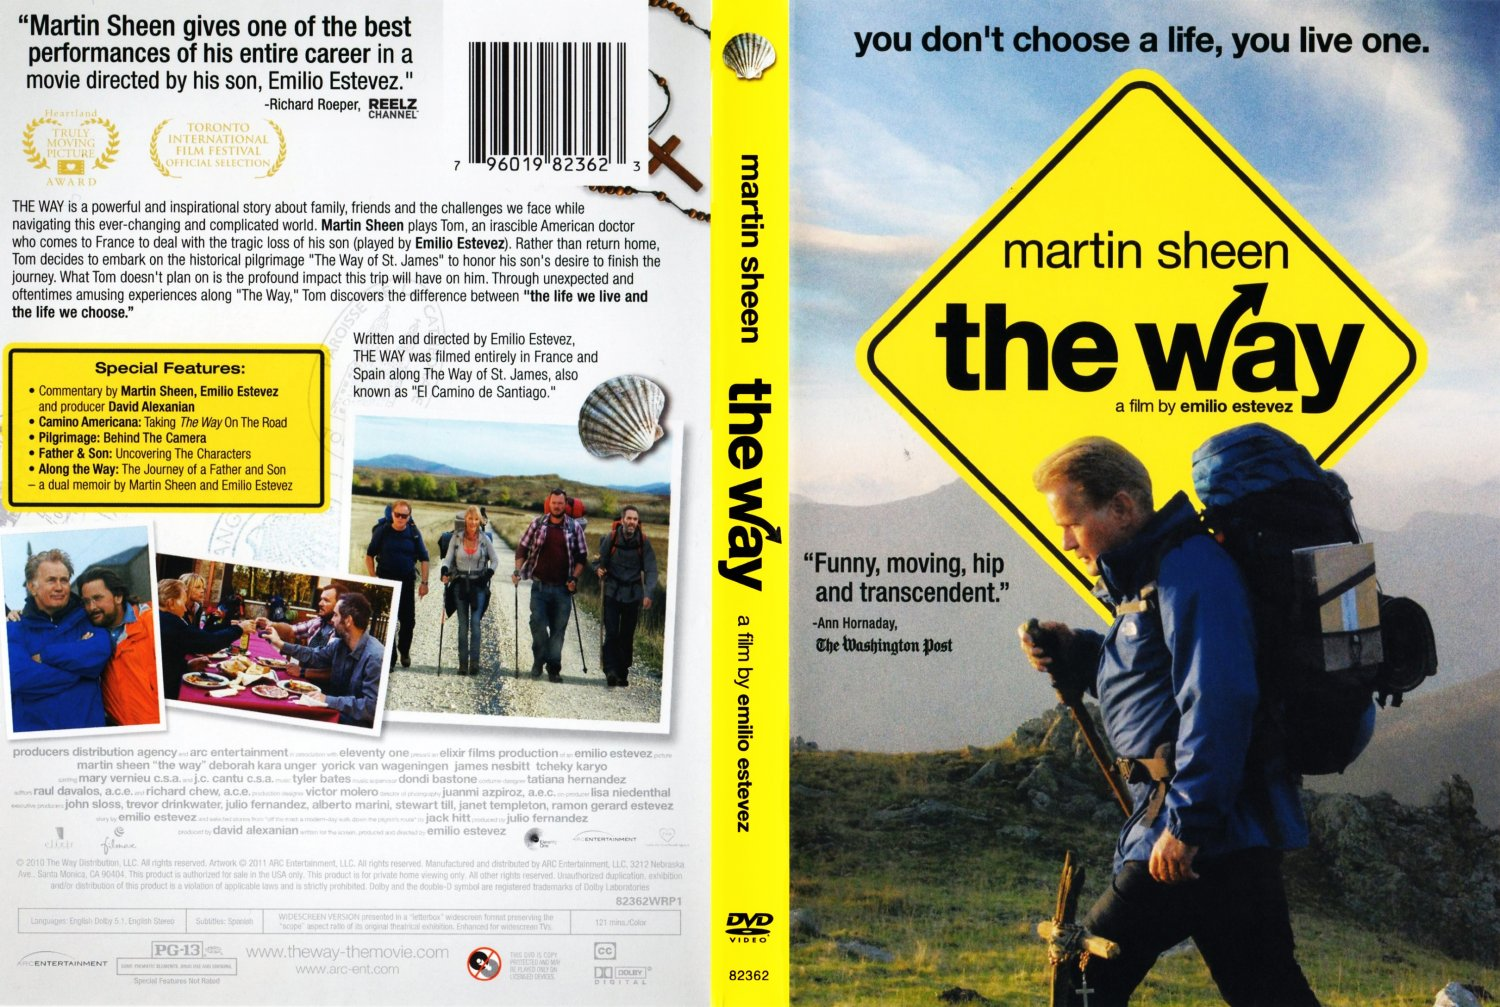 the way movie dvd scanned covers the way dvd covers